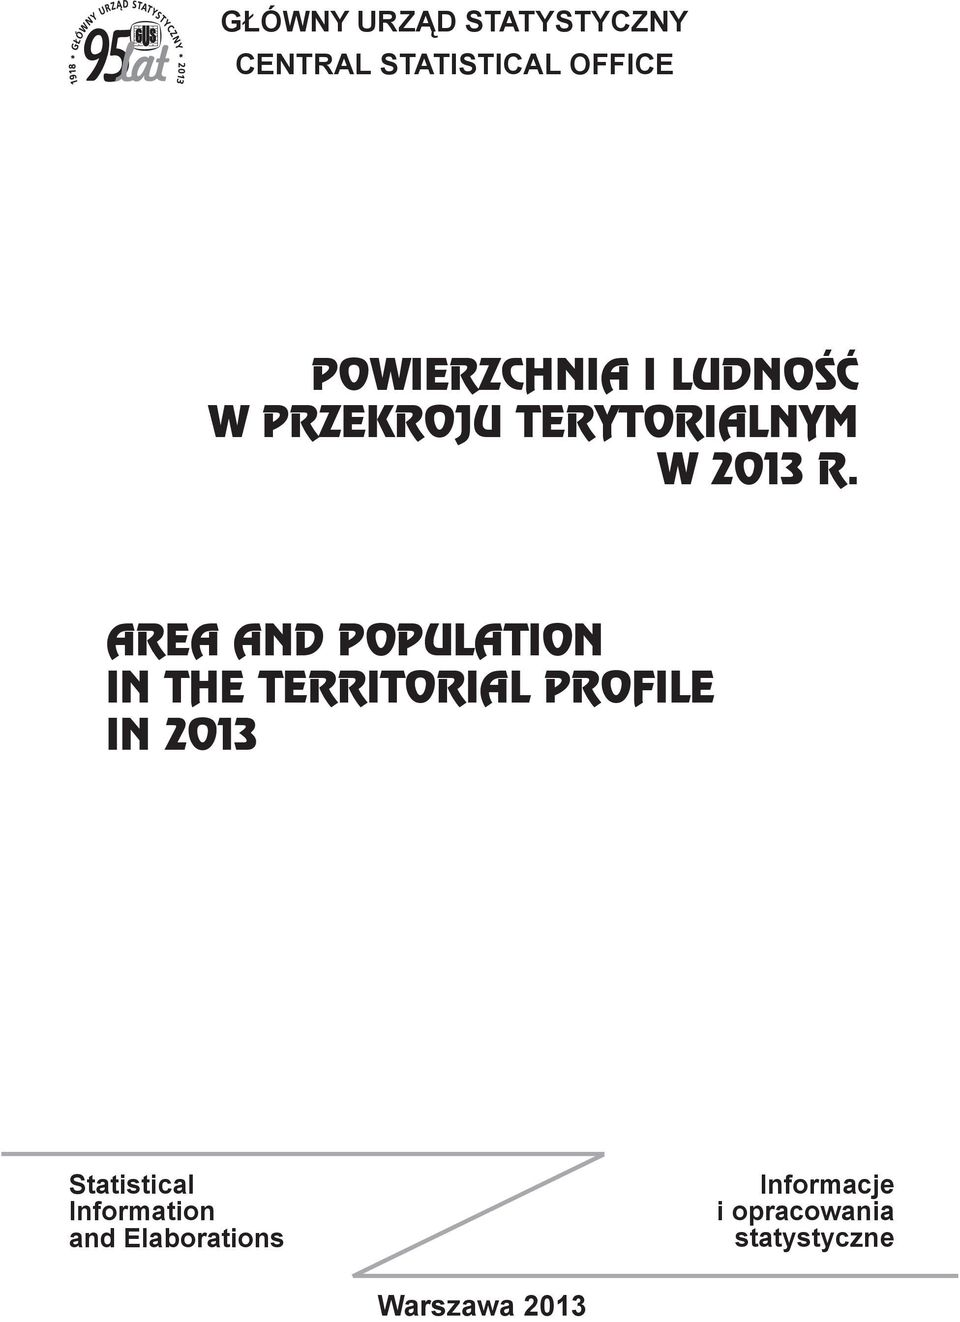 AREA AND POPULATION IN THE TERRITORIAL PROFILE IN 2013